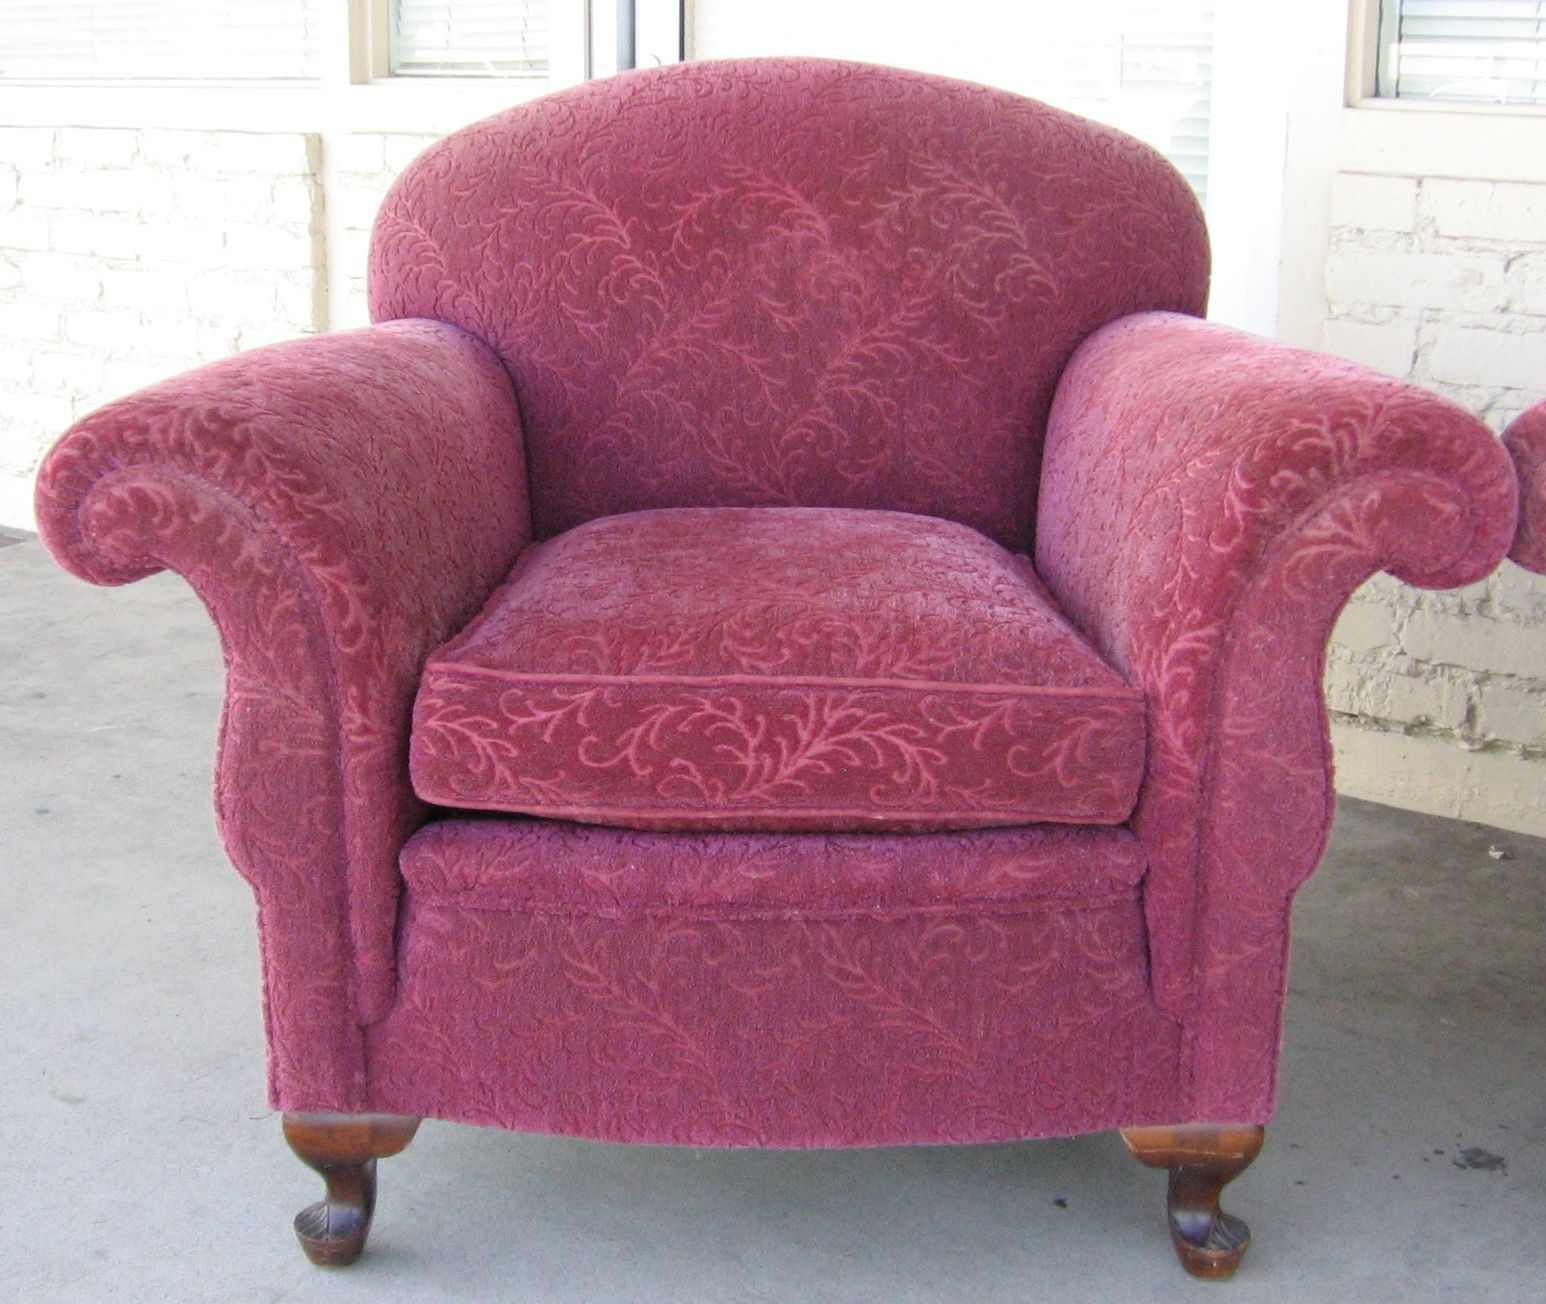 1930s upholstered furniture images google search 1930s upholstered furniture images google search 1930s